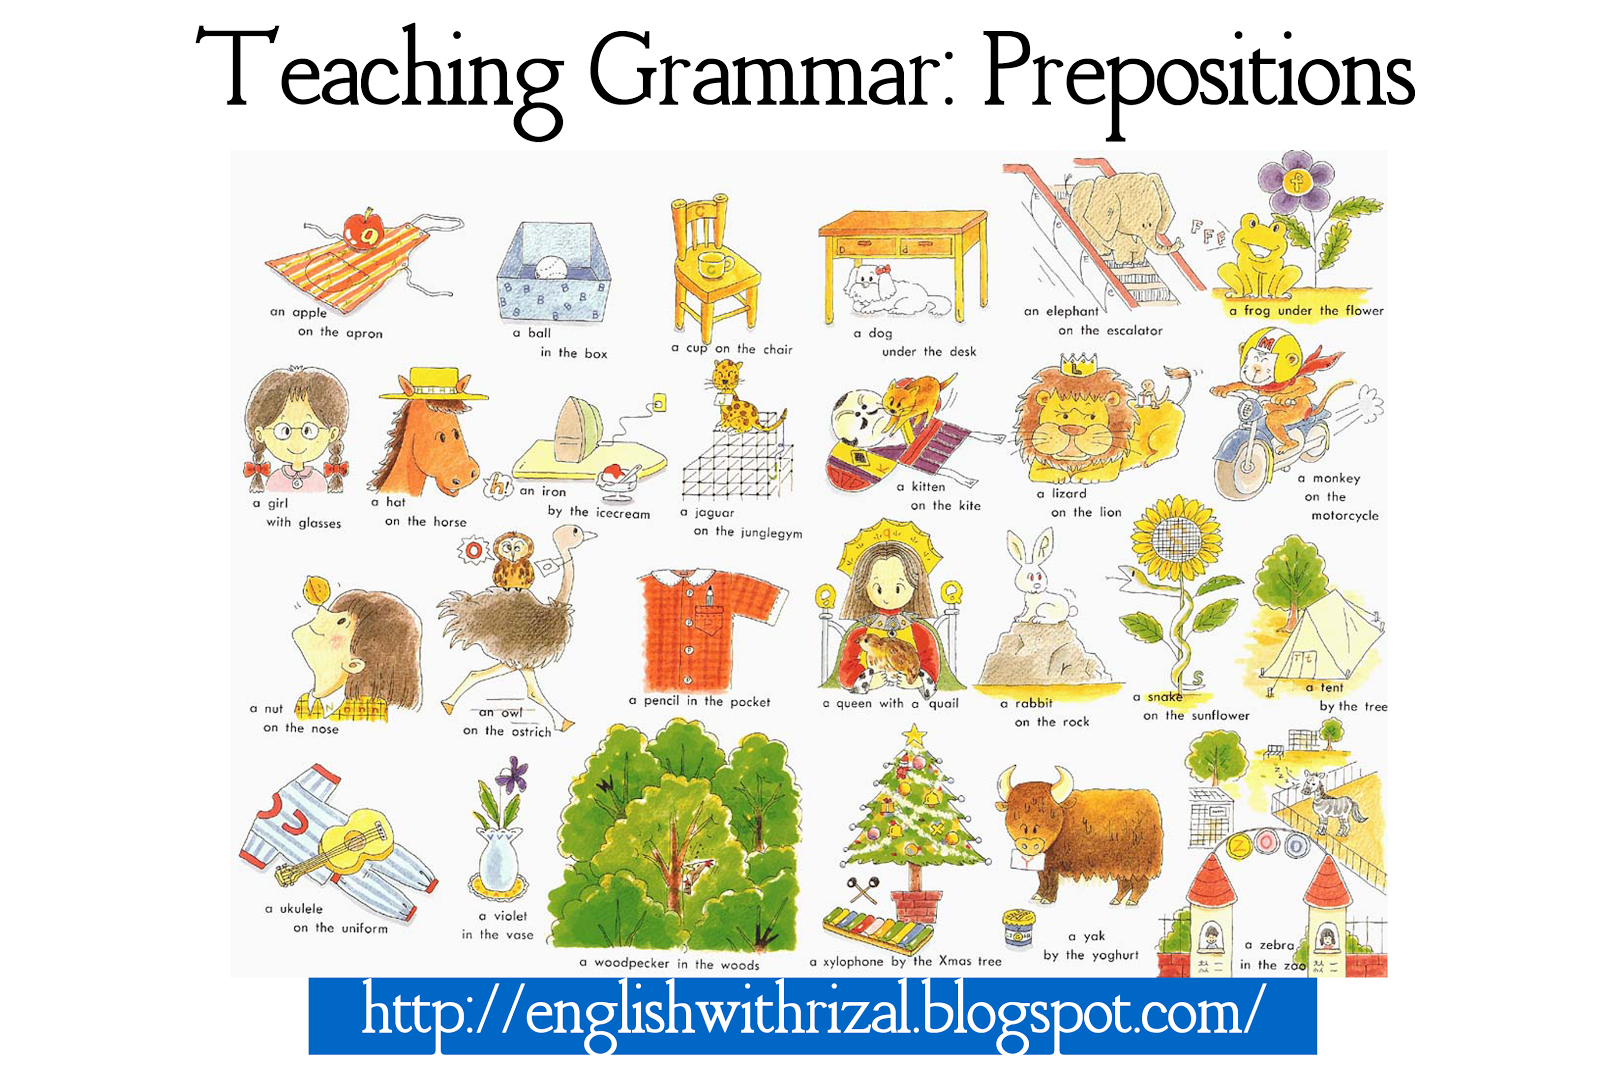 English With Rizal Lesson Plan Teaching Prepositions